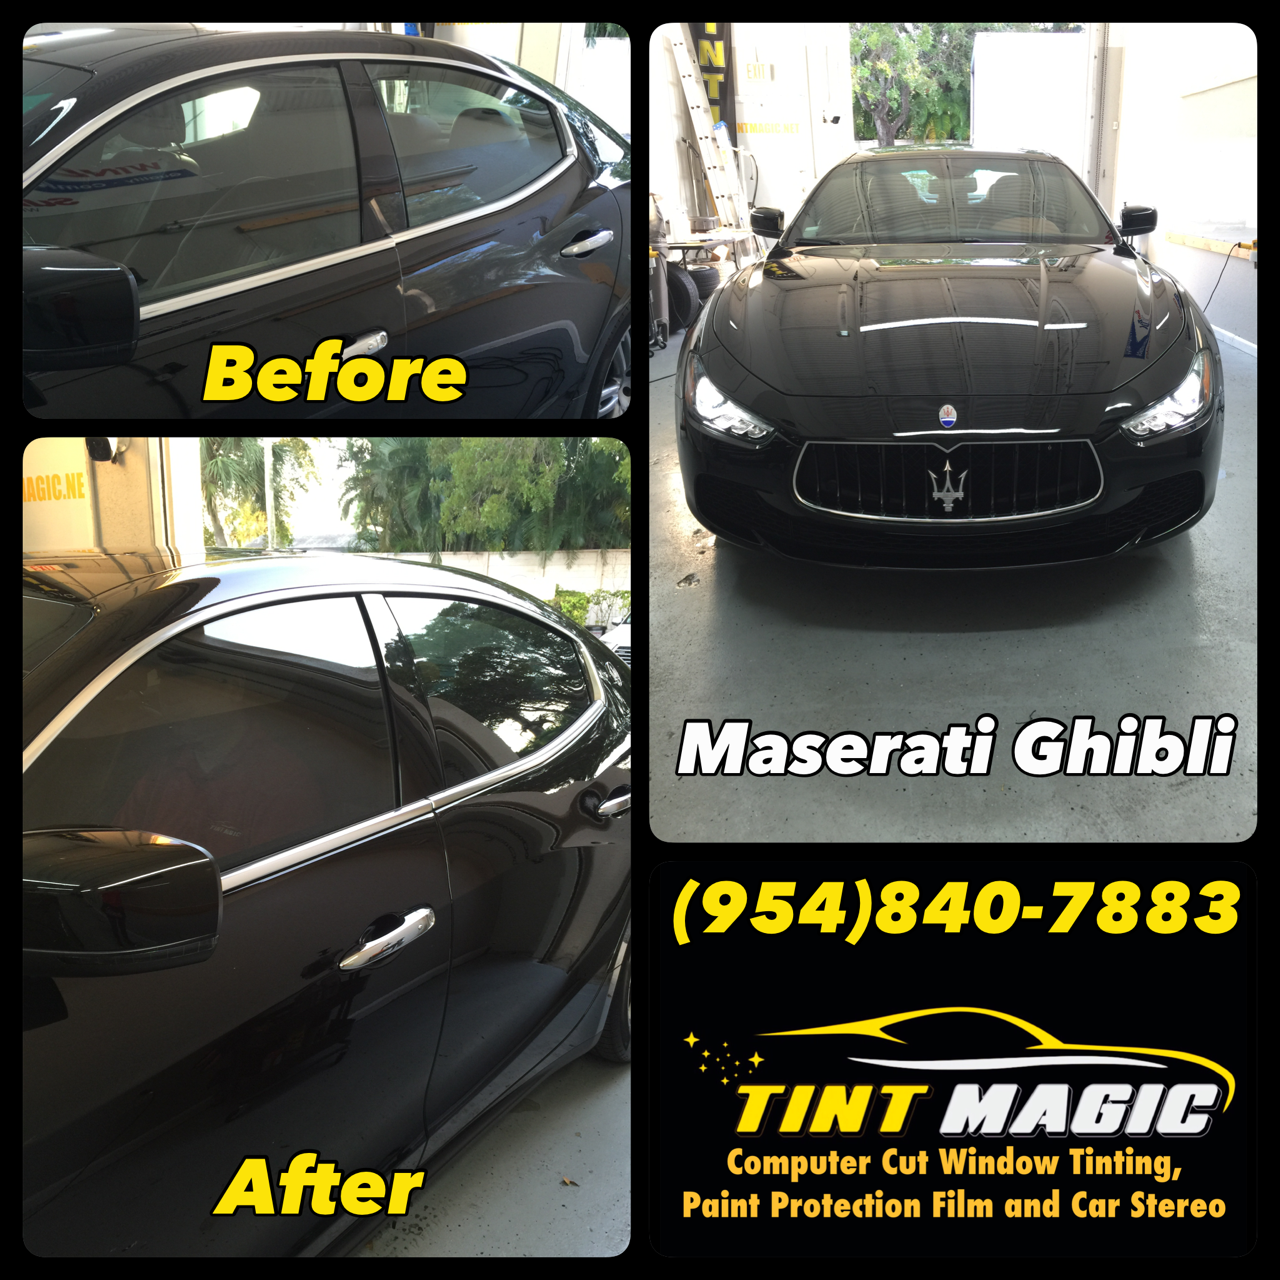 Maserati Ghibli at Tint Magic Window Tinting Coral Springs